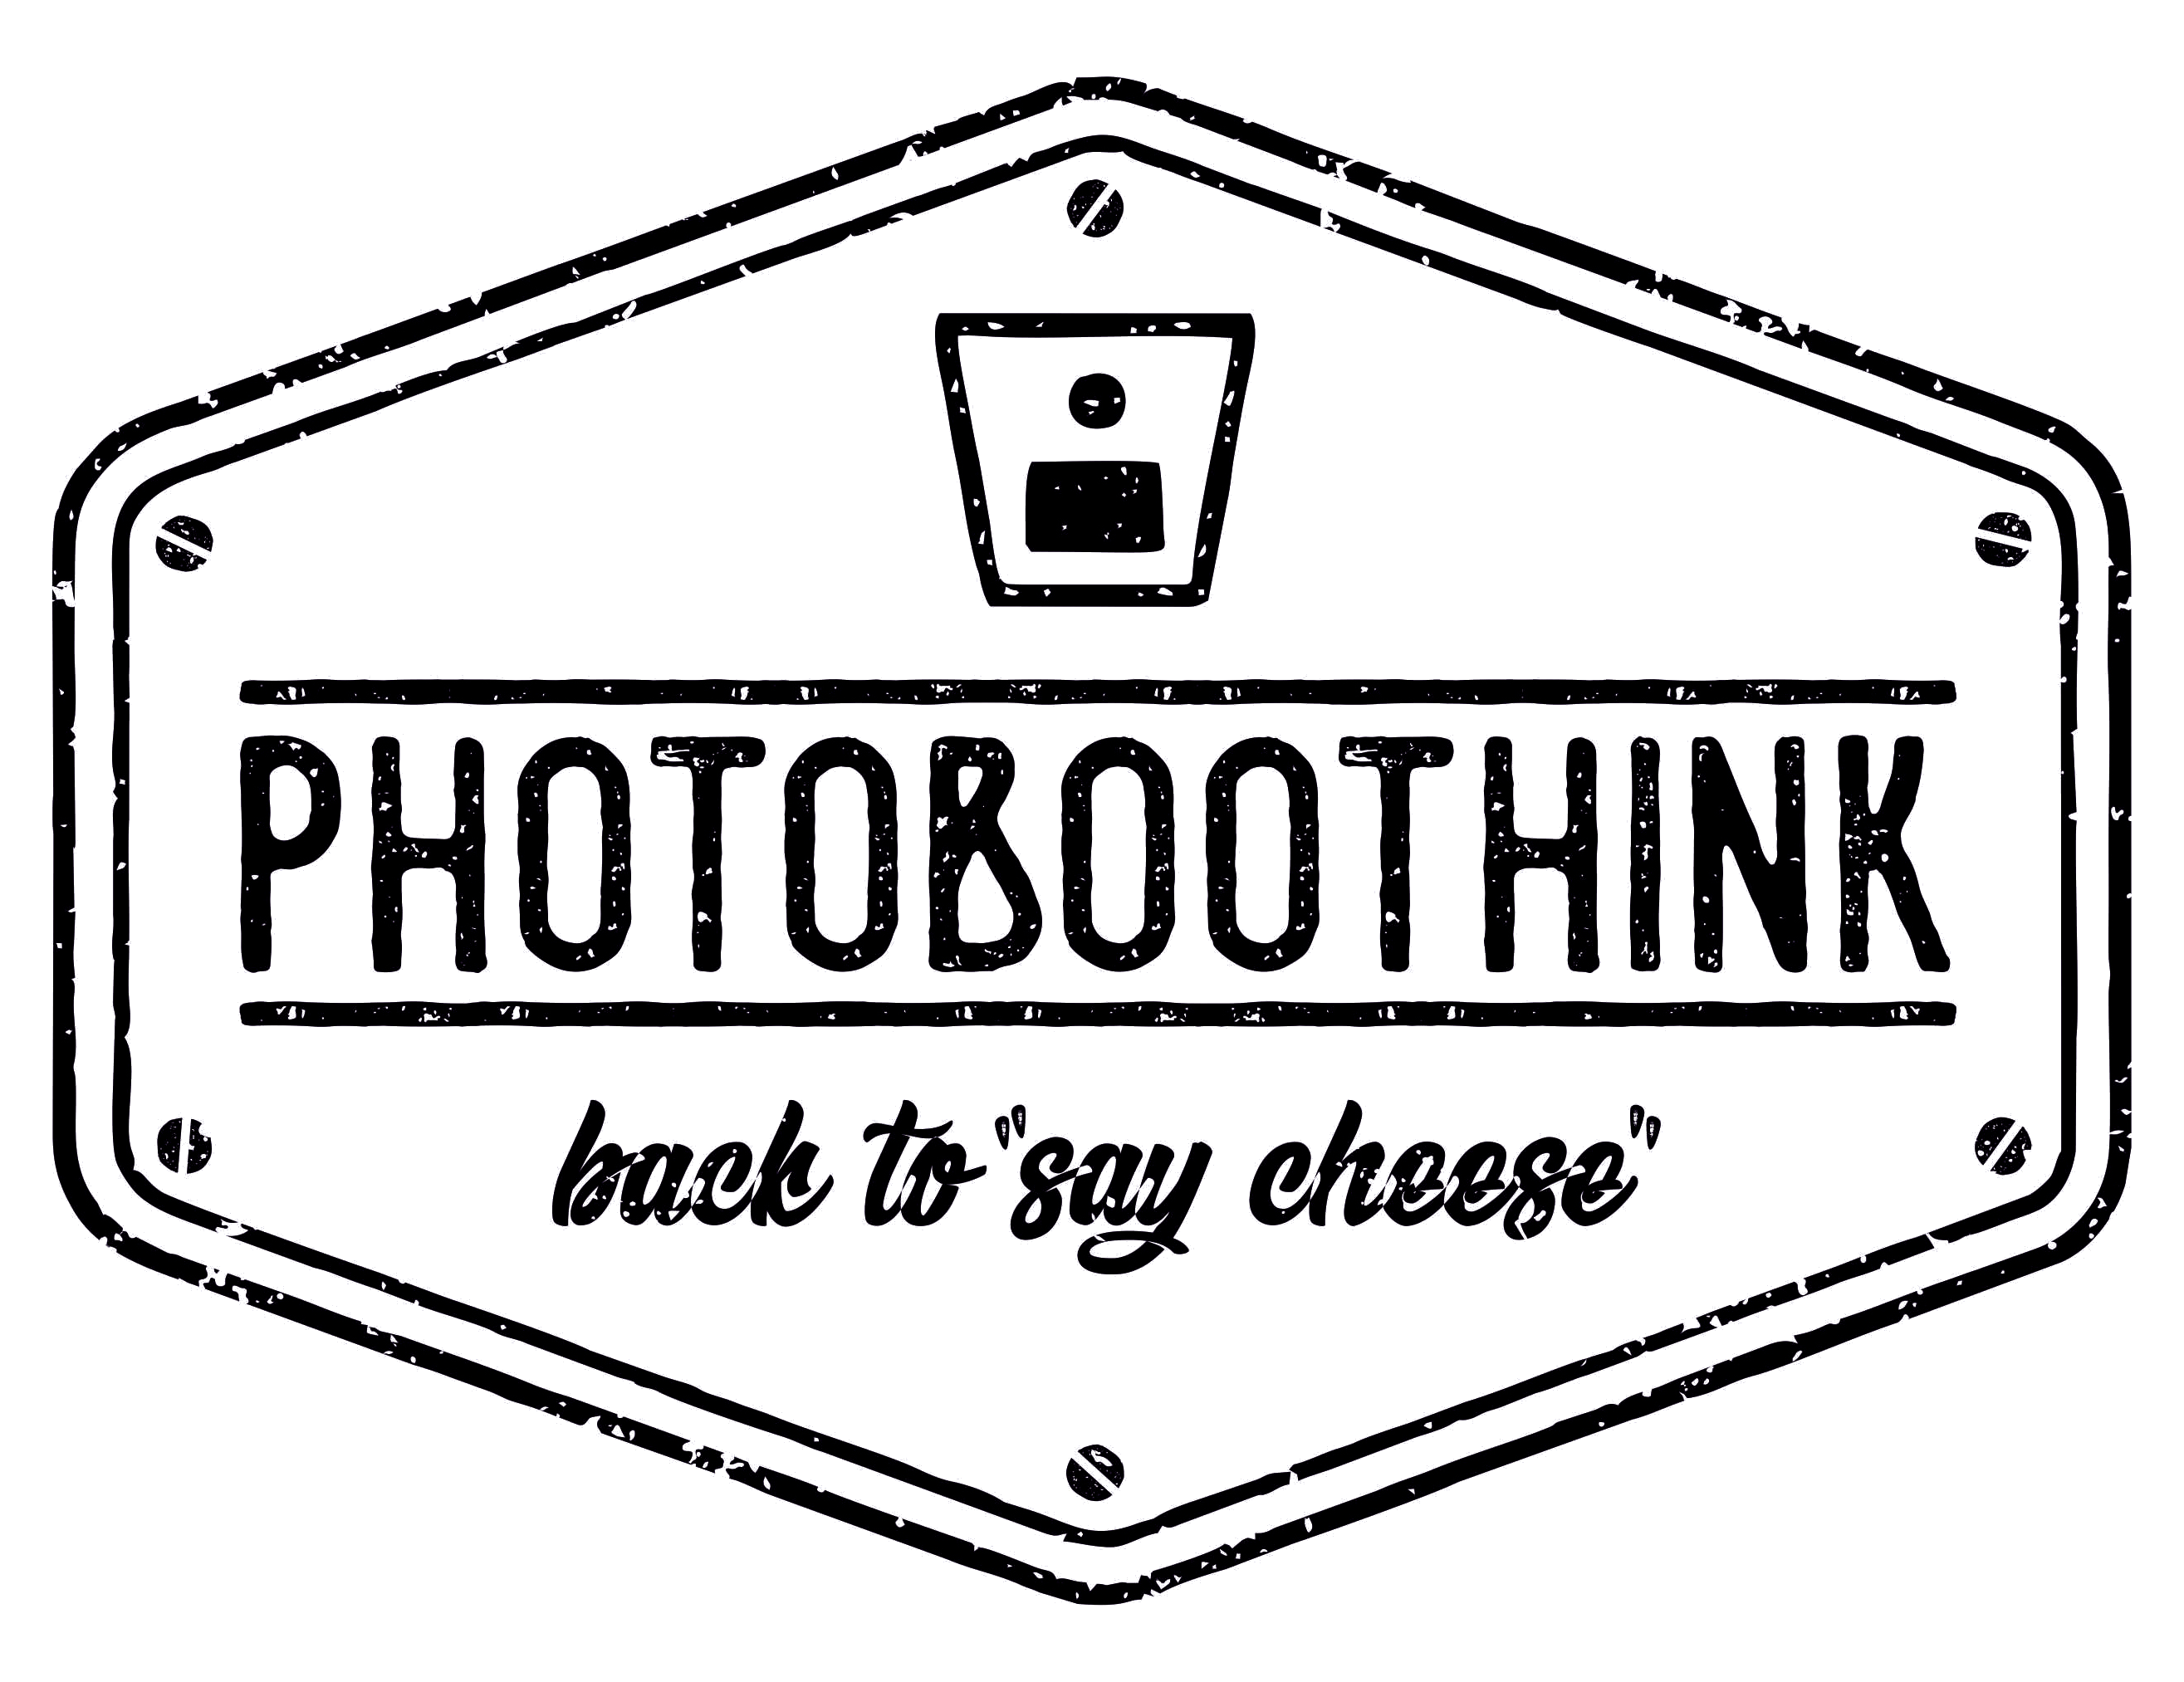 Photoboothink - George Galanis, Photobooth